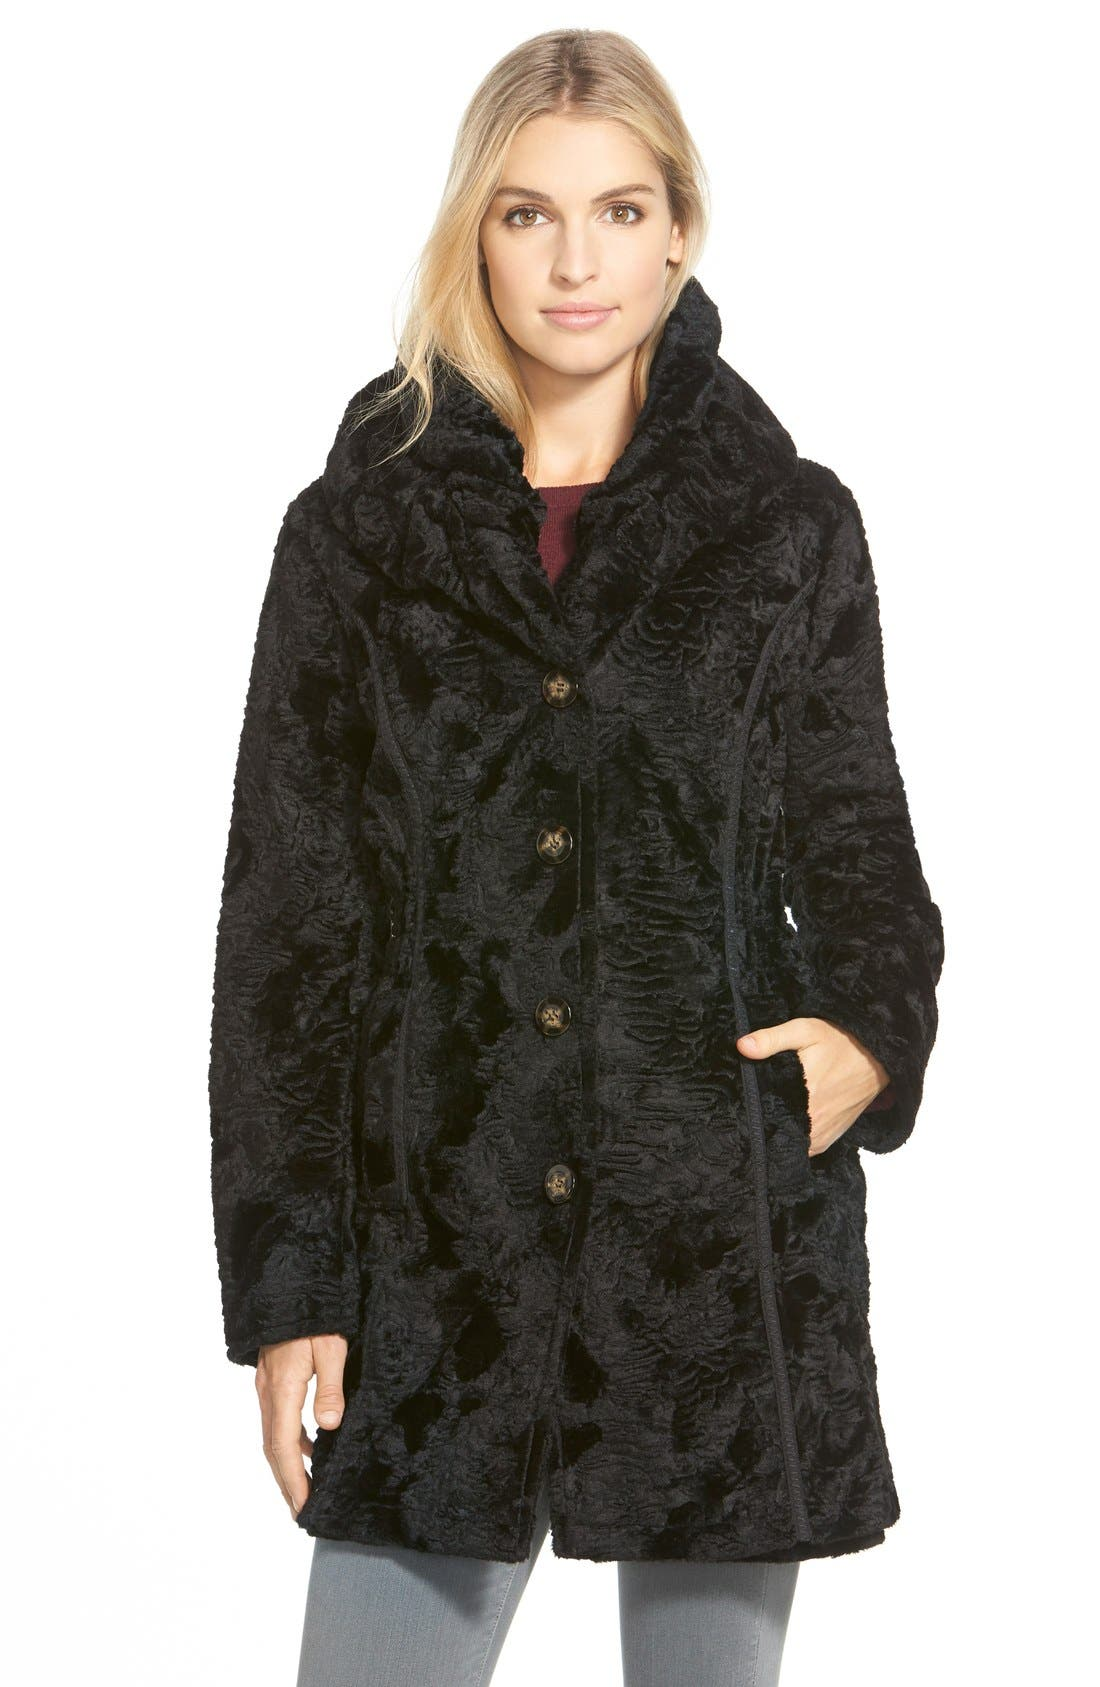 Alternate Image 1 Selected - Laundry by Shelli Segal Reversible Faux Persian Lamb Fur Coat (Regular & Petite)